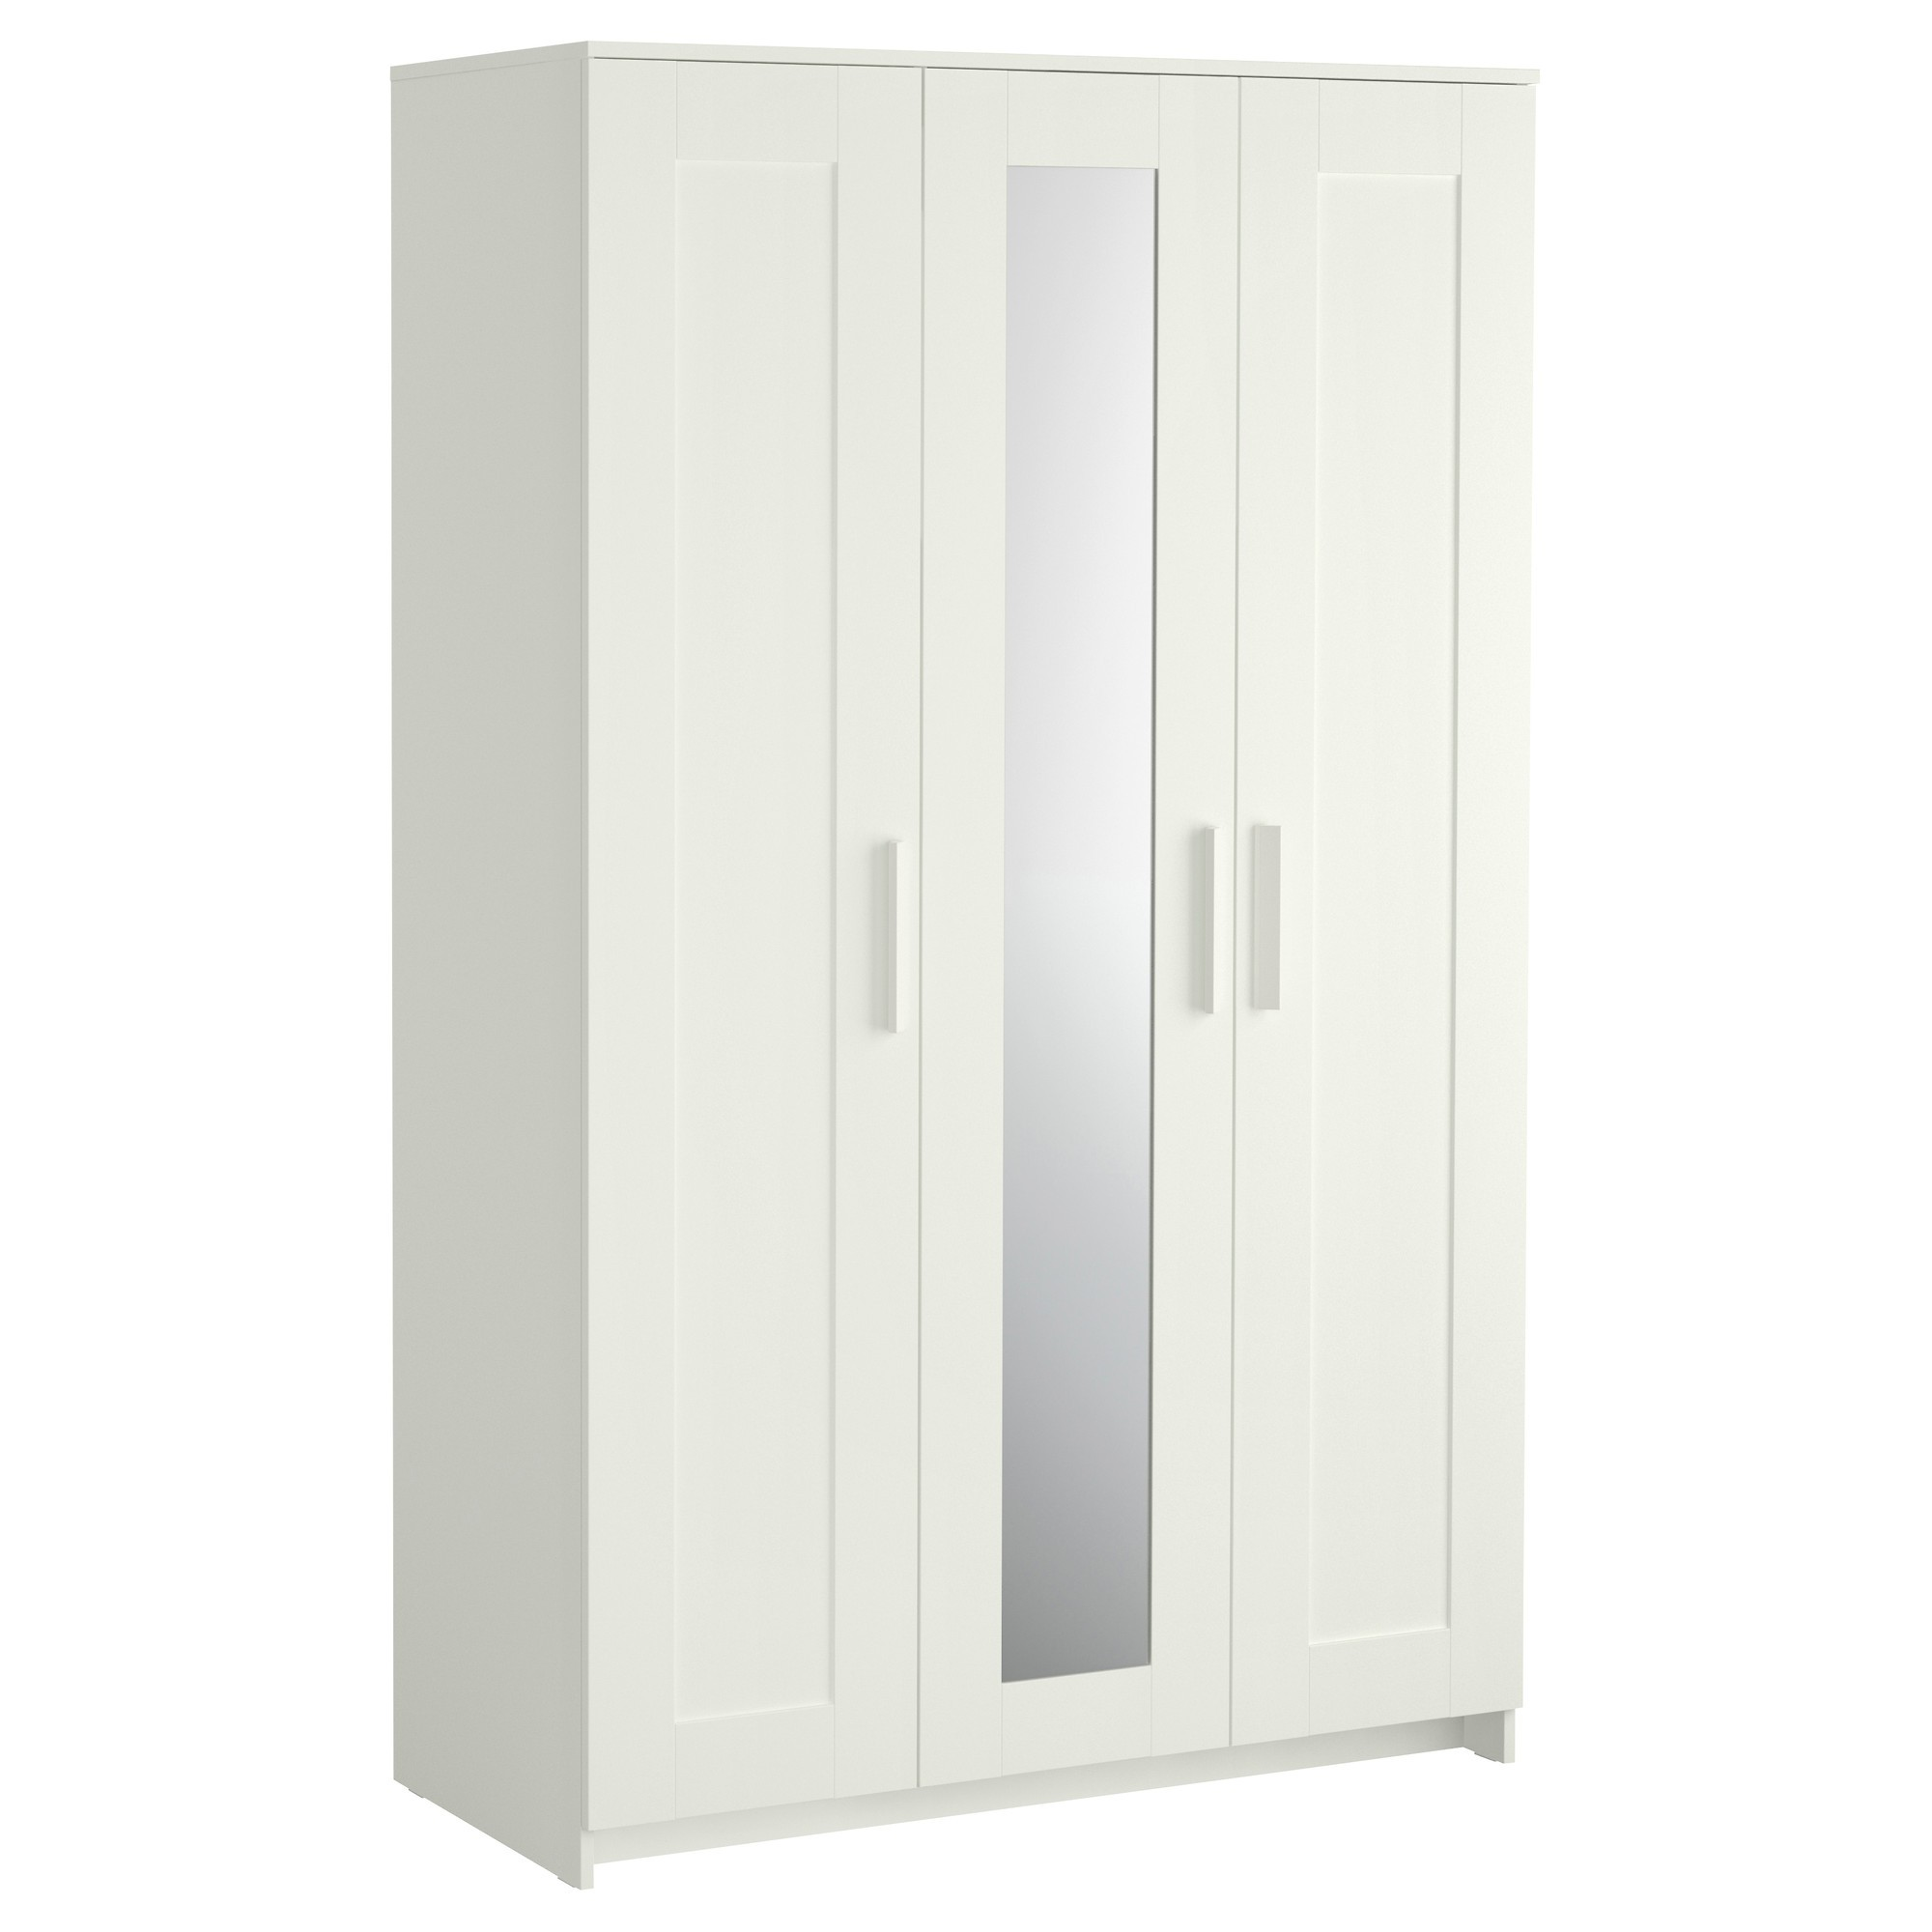 armoire ikea 3 portes interesting chambre fille vert d eau et rose with armoire ikea 3 portes. Black Bedroom Furniture Sets. Home Design Ideas